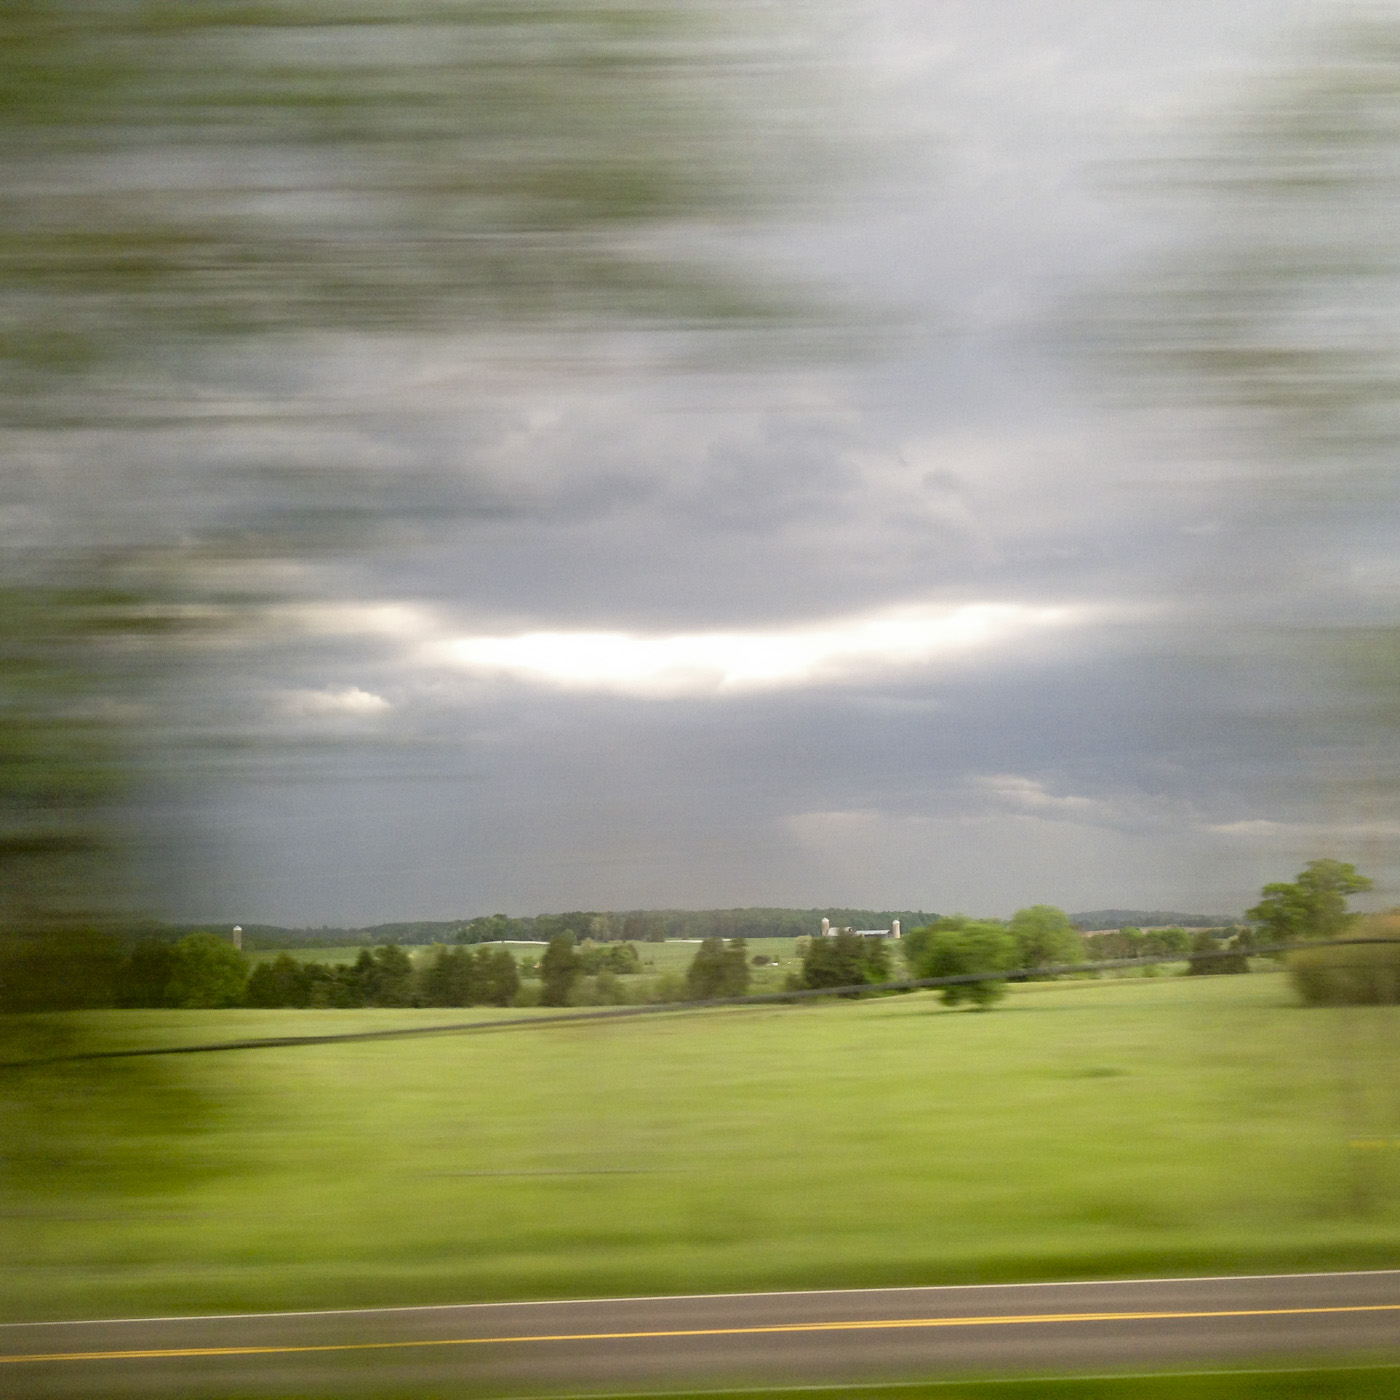 Cindy Bernard, Manassas to Culpeper Portfolio, 98 images, 2014, photography